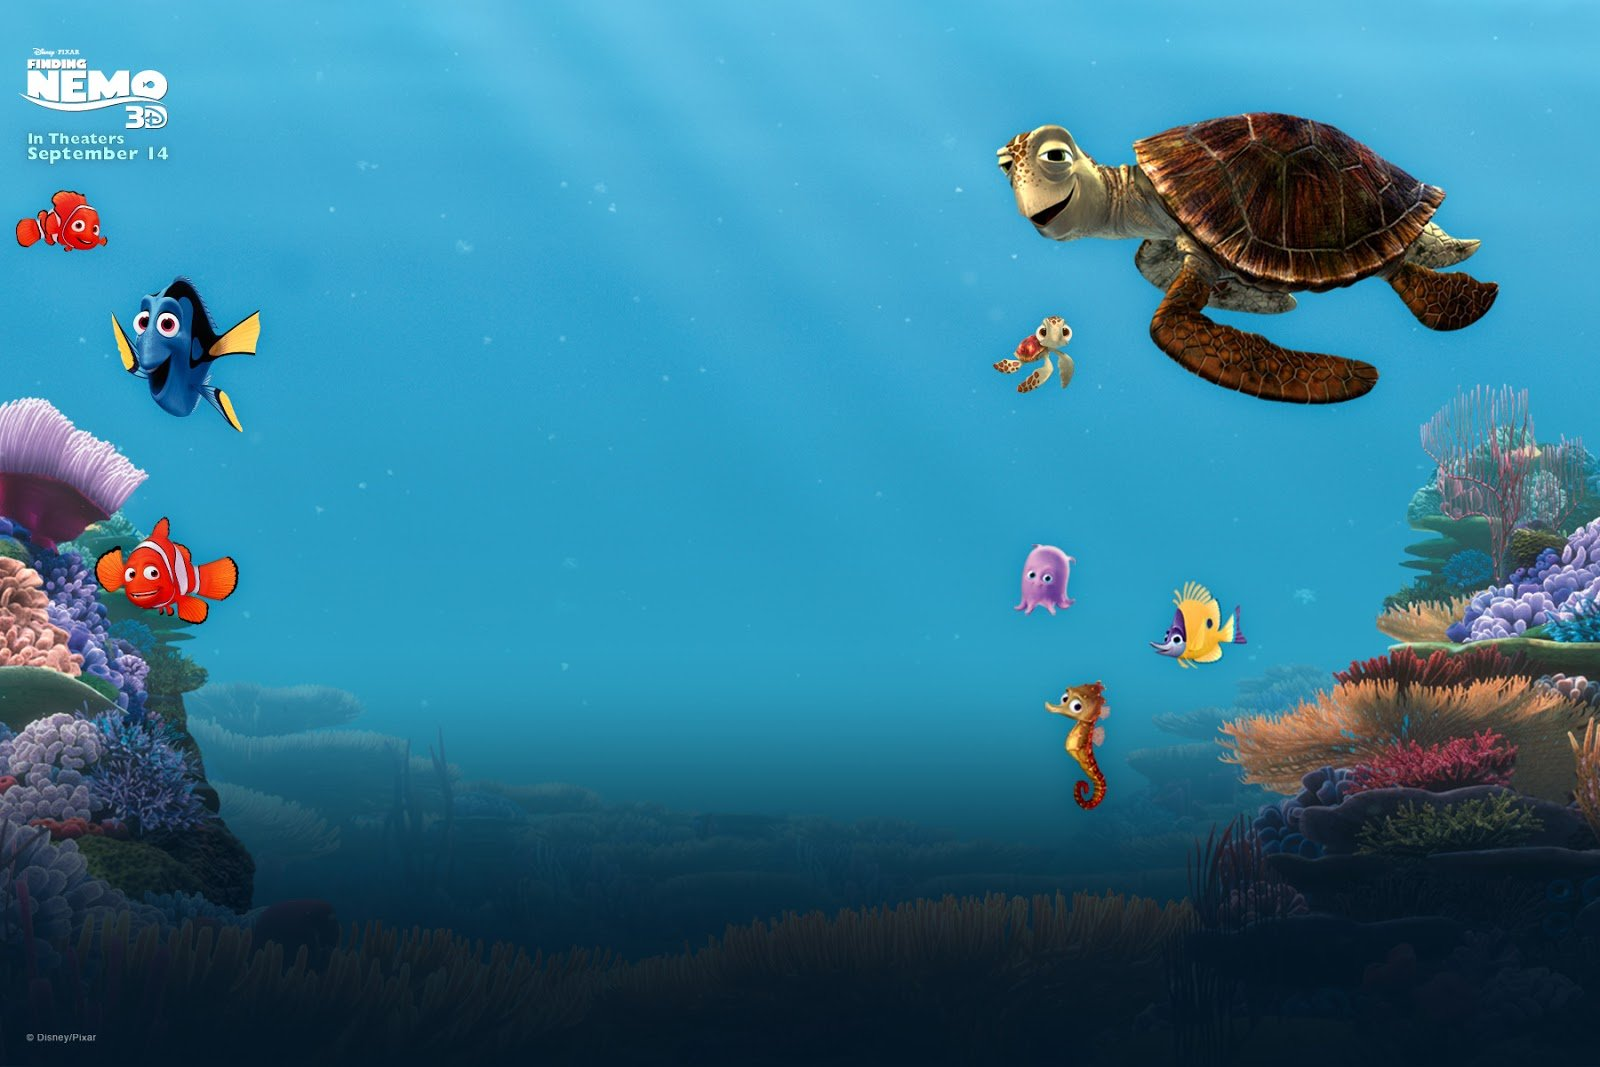 Finding Nemo Animation Underwater Sea Ocean Tropical Fish